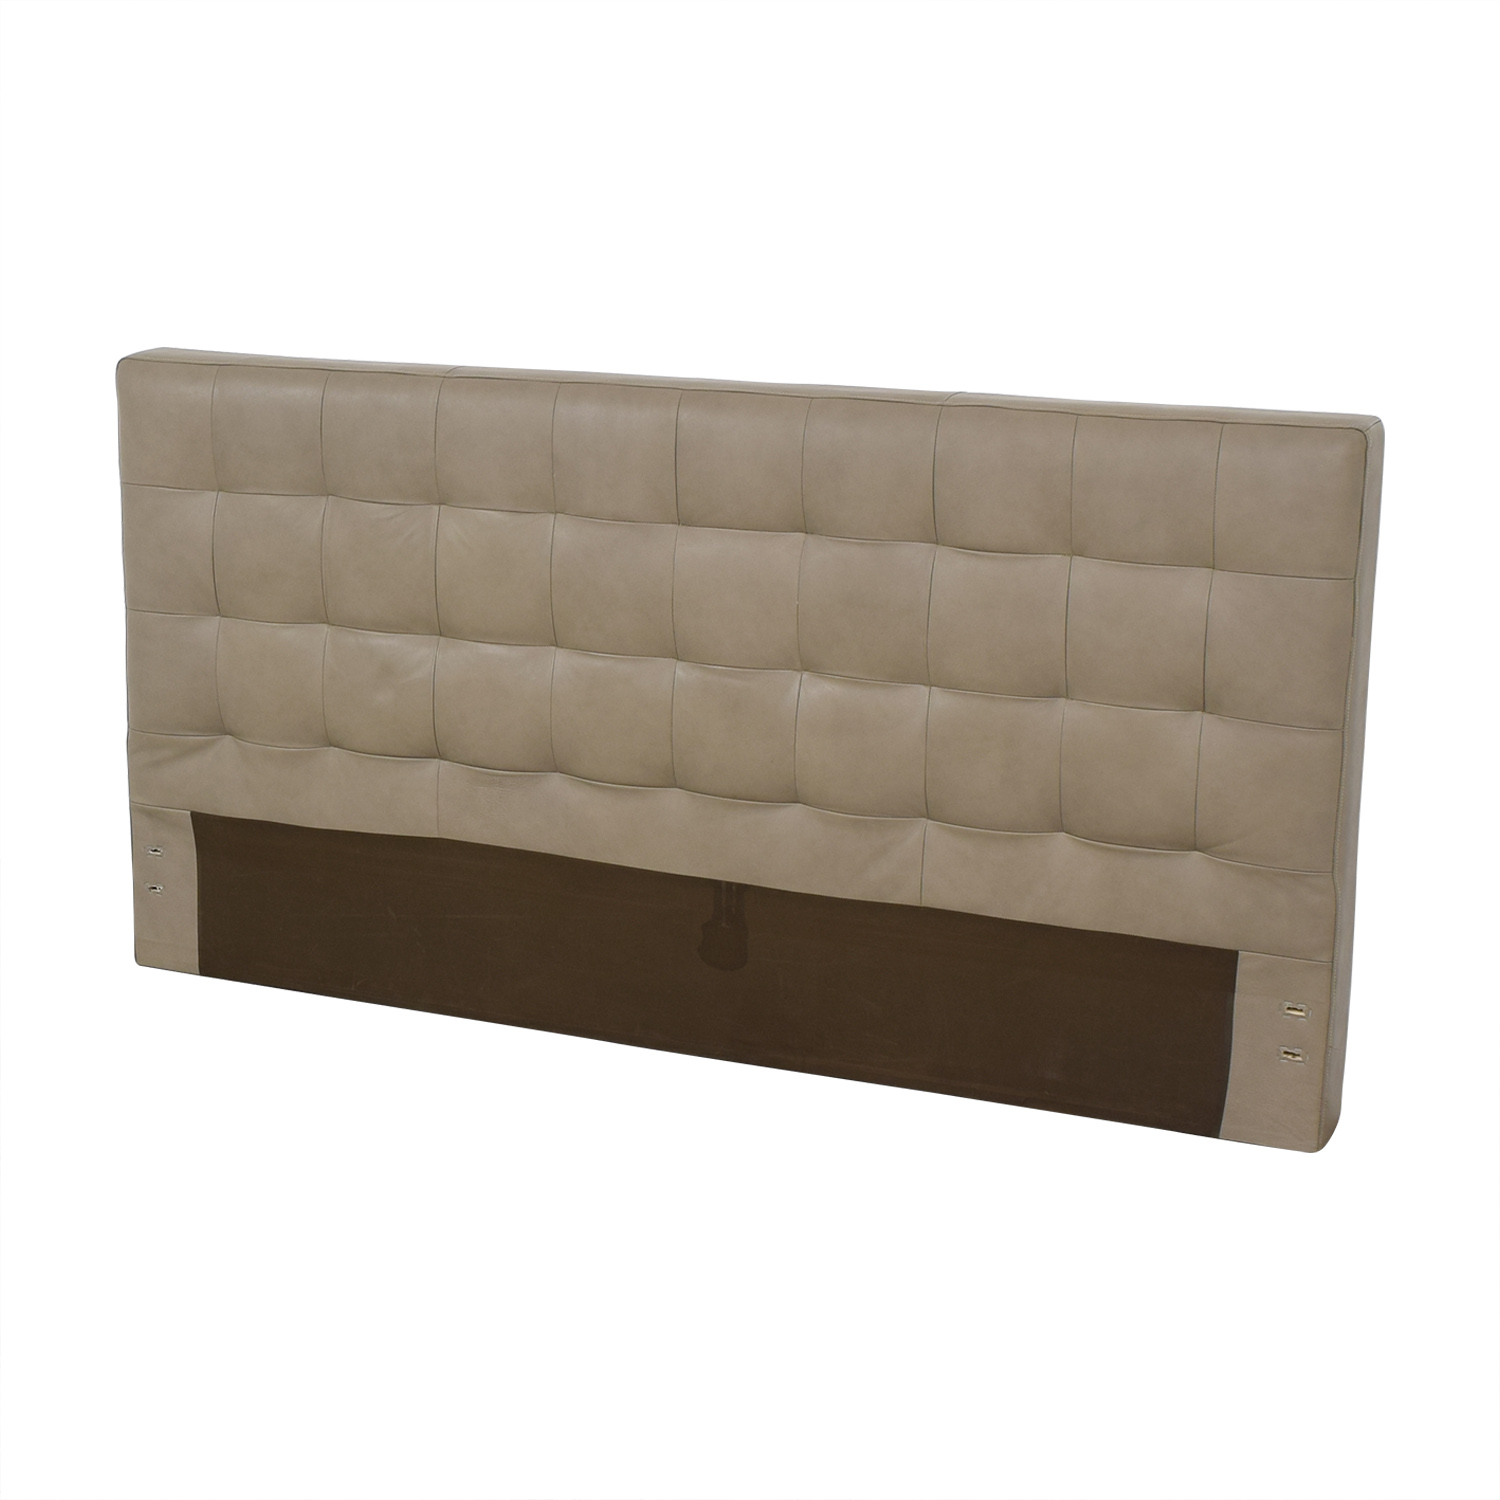 West Elm West Elm Grid Tufted King Headboard nj